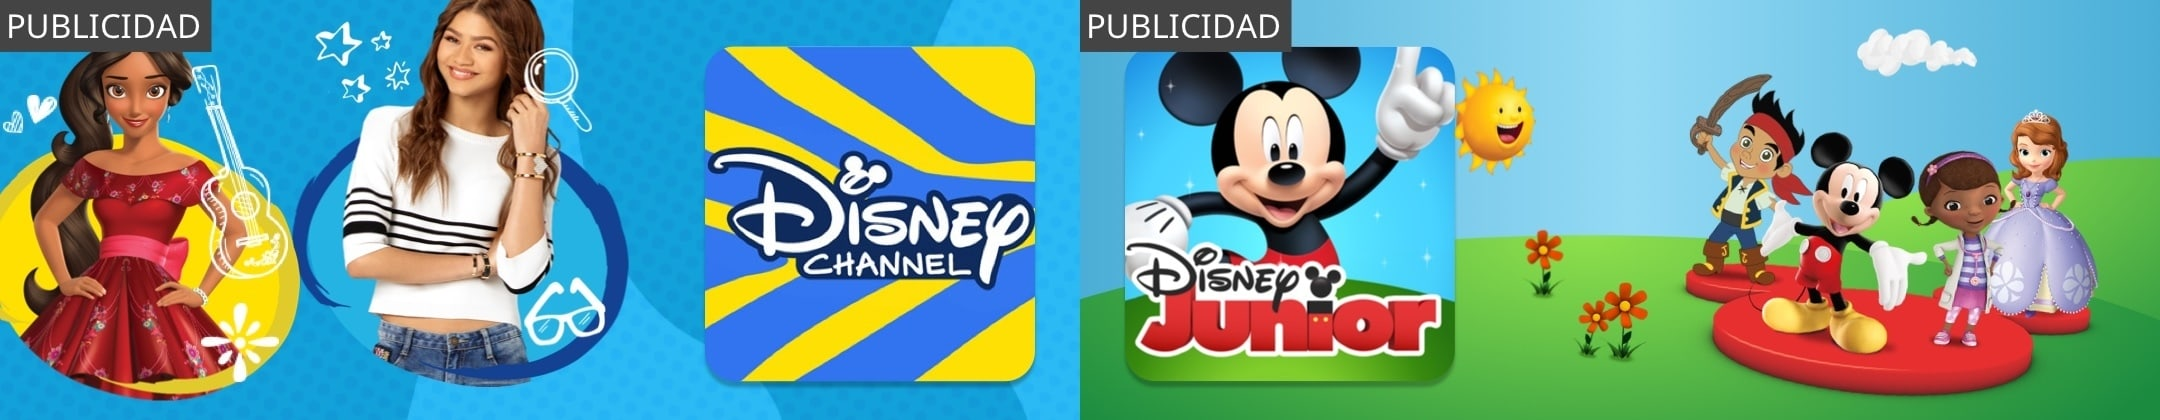 PUBLICIDAD - Disney Channel App & Disney Junior App